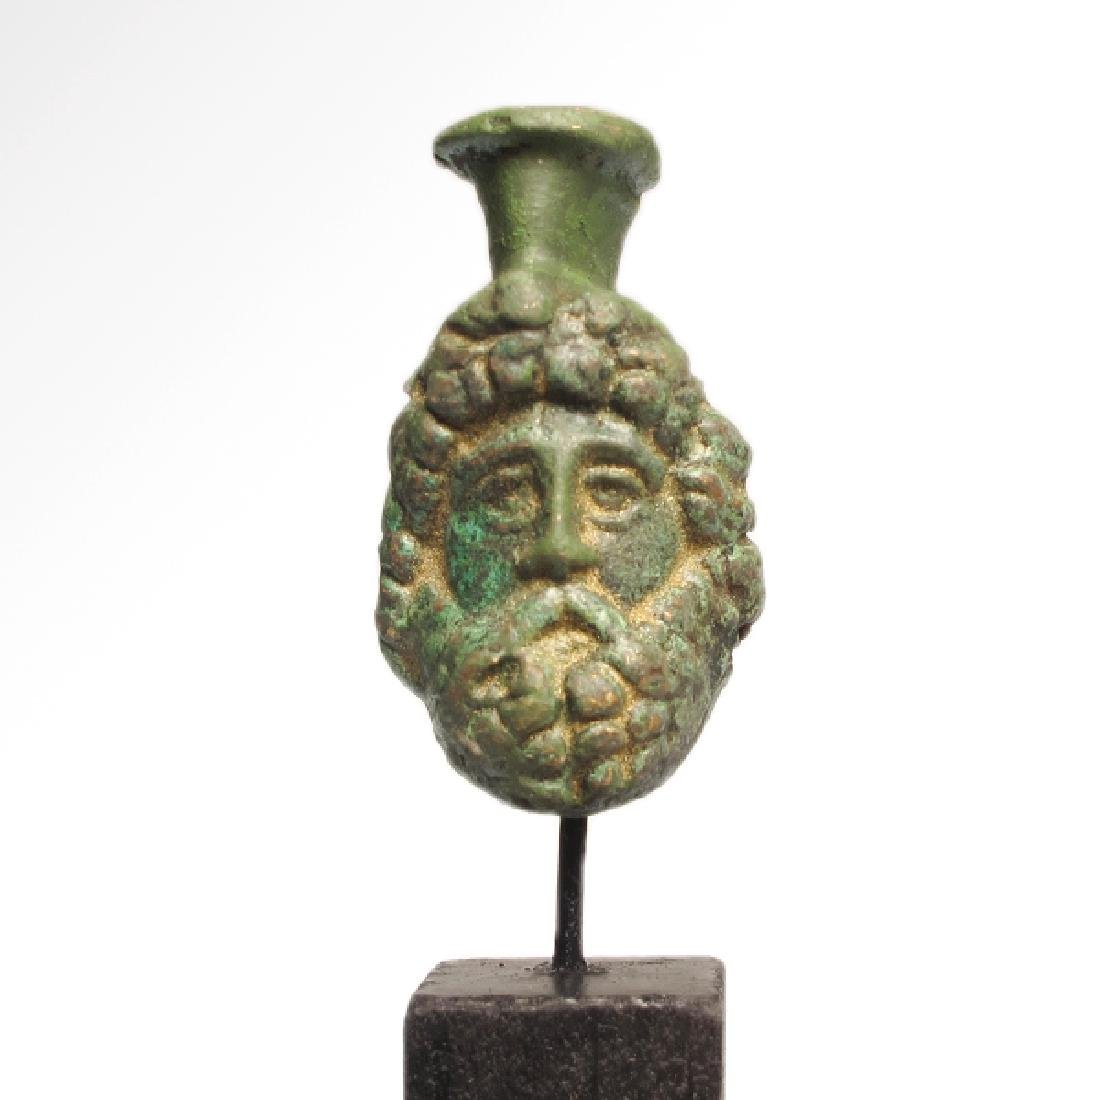 Roman Bronze Head of Zeus-Serapis, c. 1st Century A.D. - 2